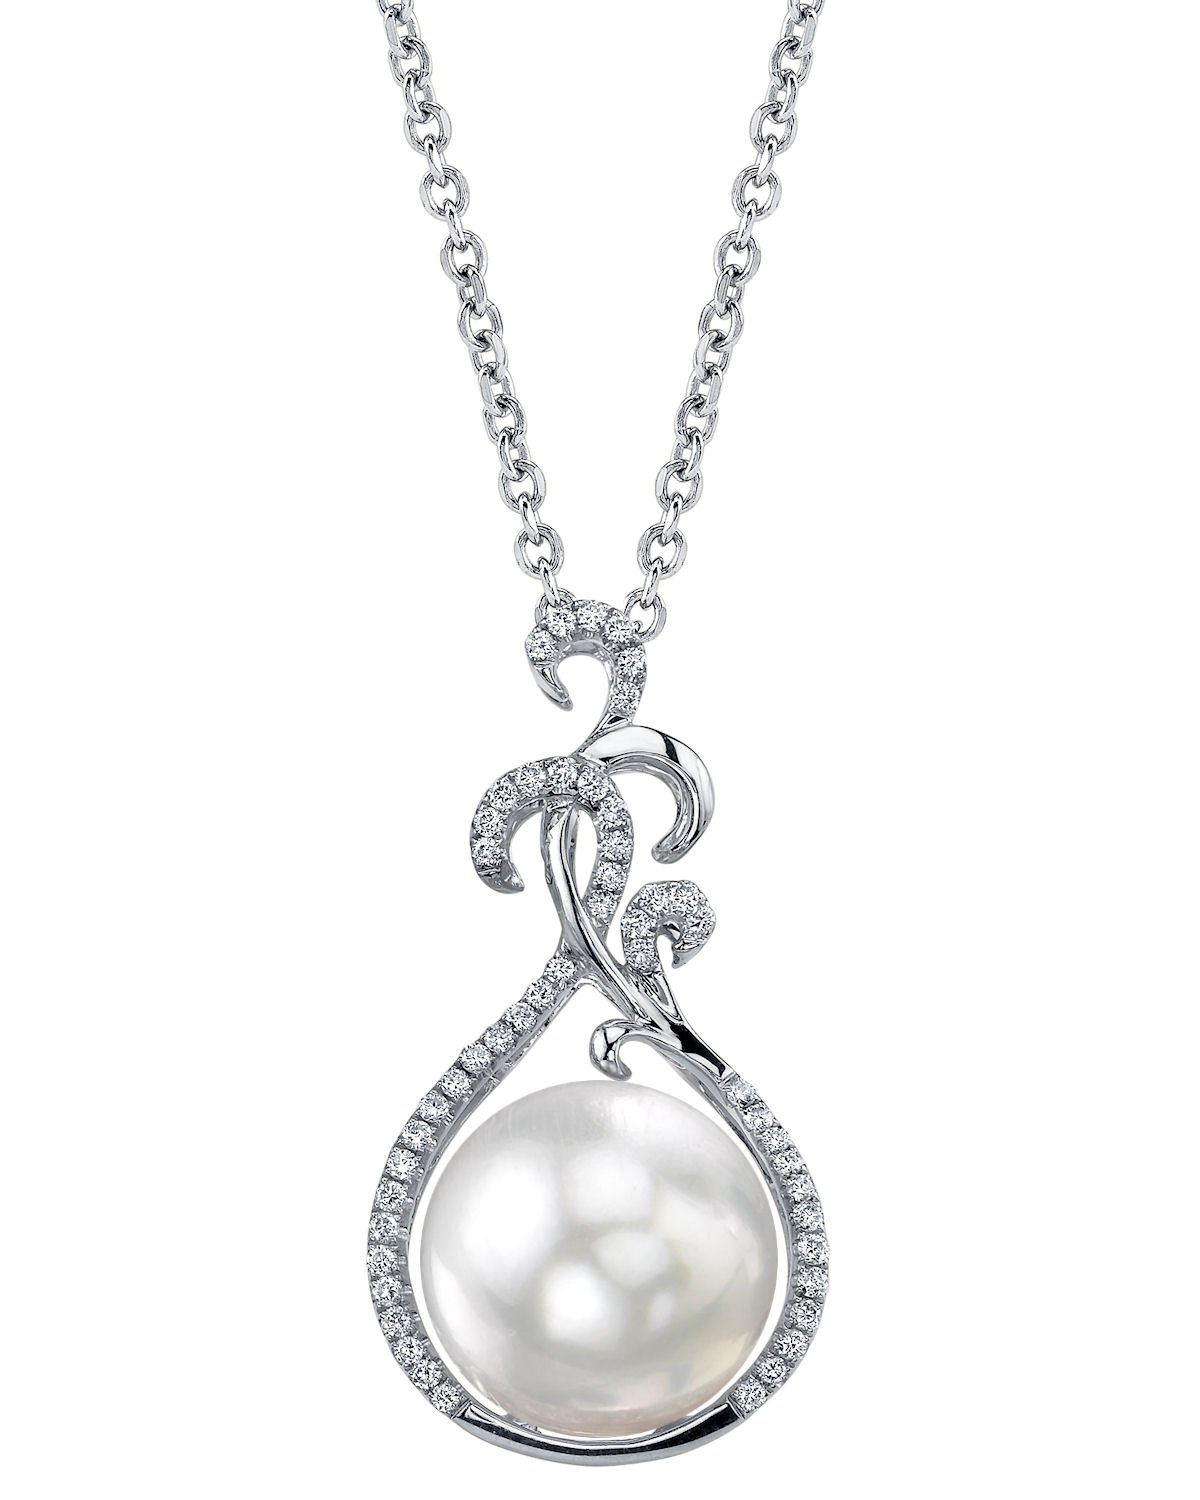 THE PEARL SOURCE 18K Gold 11-12mm Round White South Sea Cultured Pearl & Diamond Taylor Pendant Necklace for Women